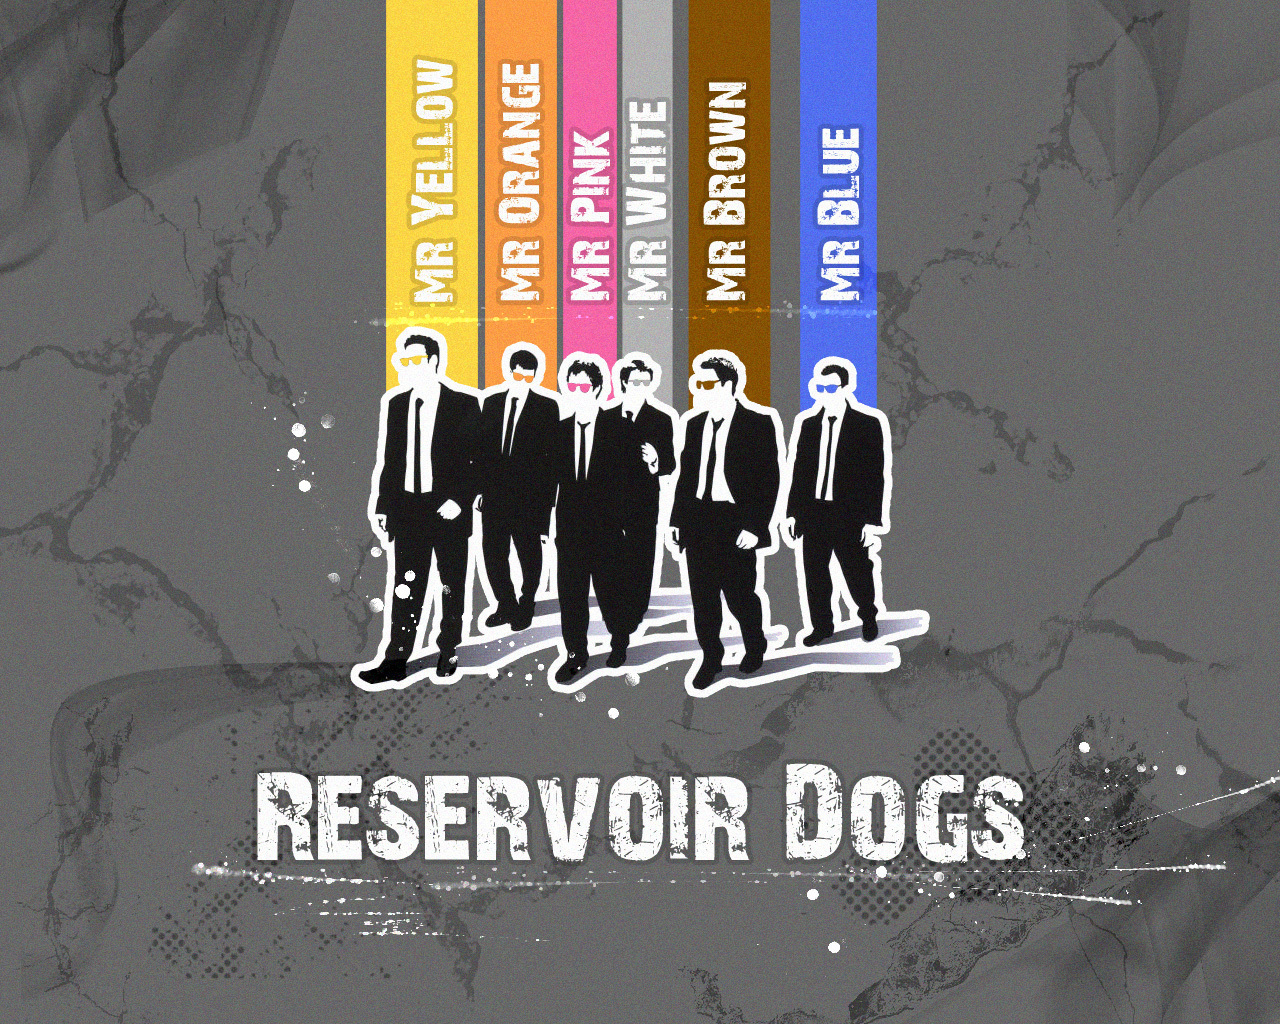 Reservoir Dogs Cast Names